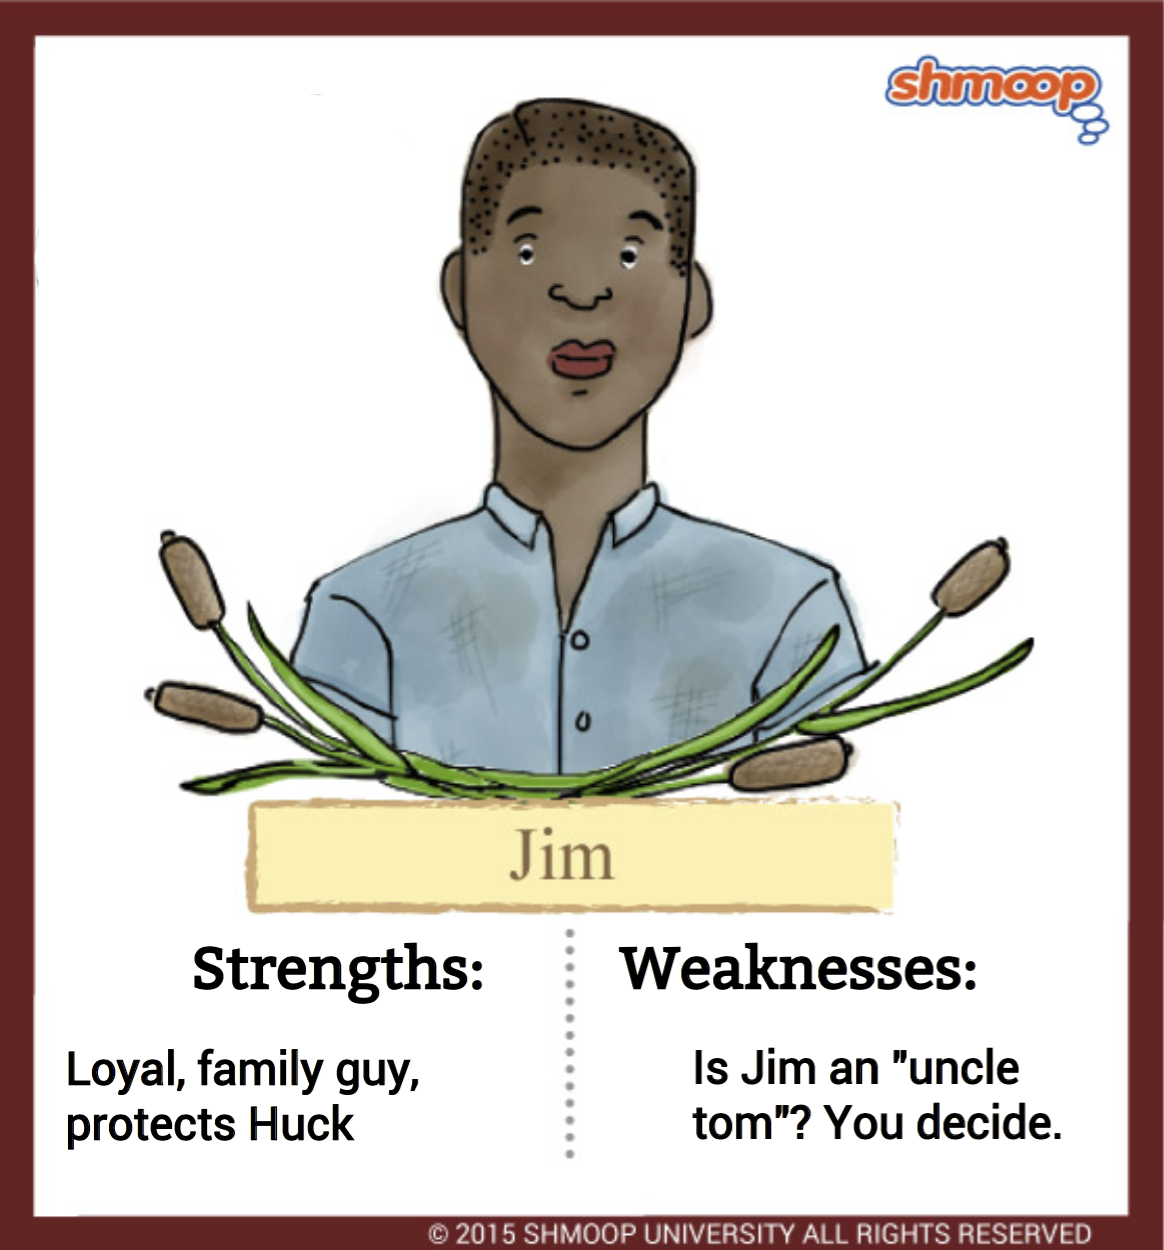 jim in adventures of huckleberry finn click the character infographic to